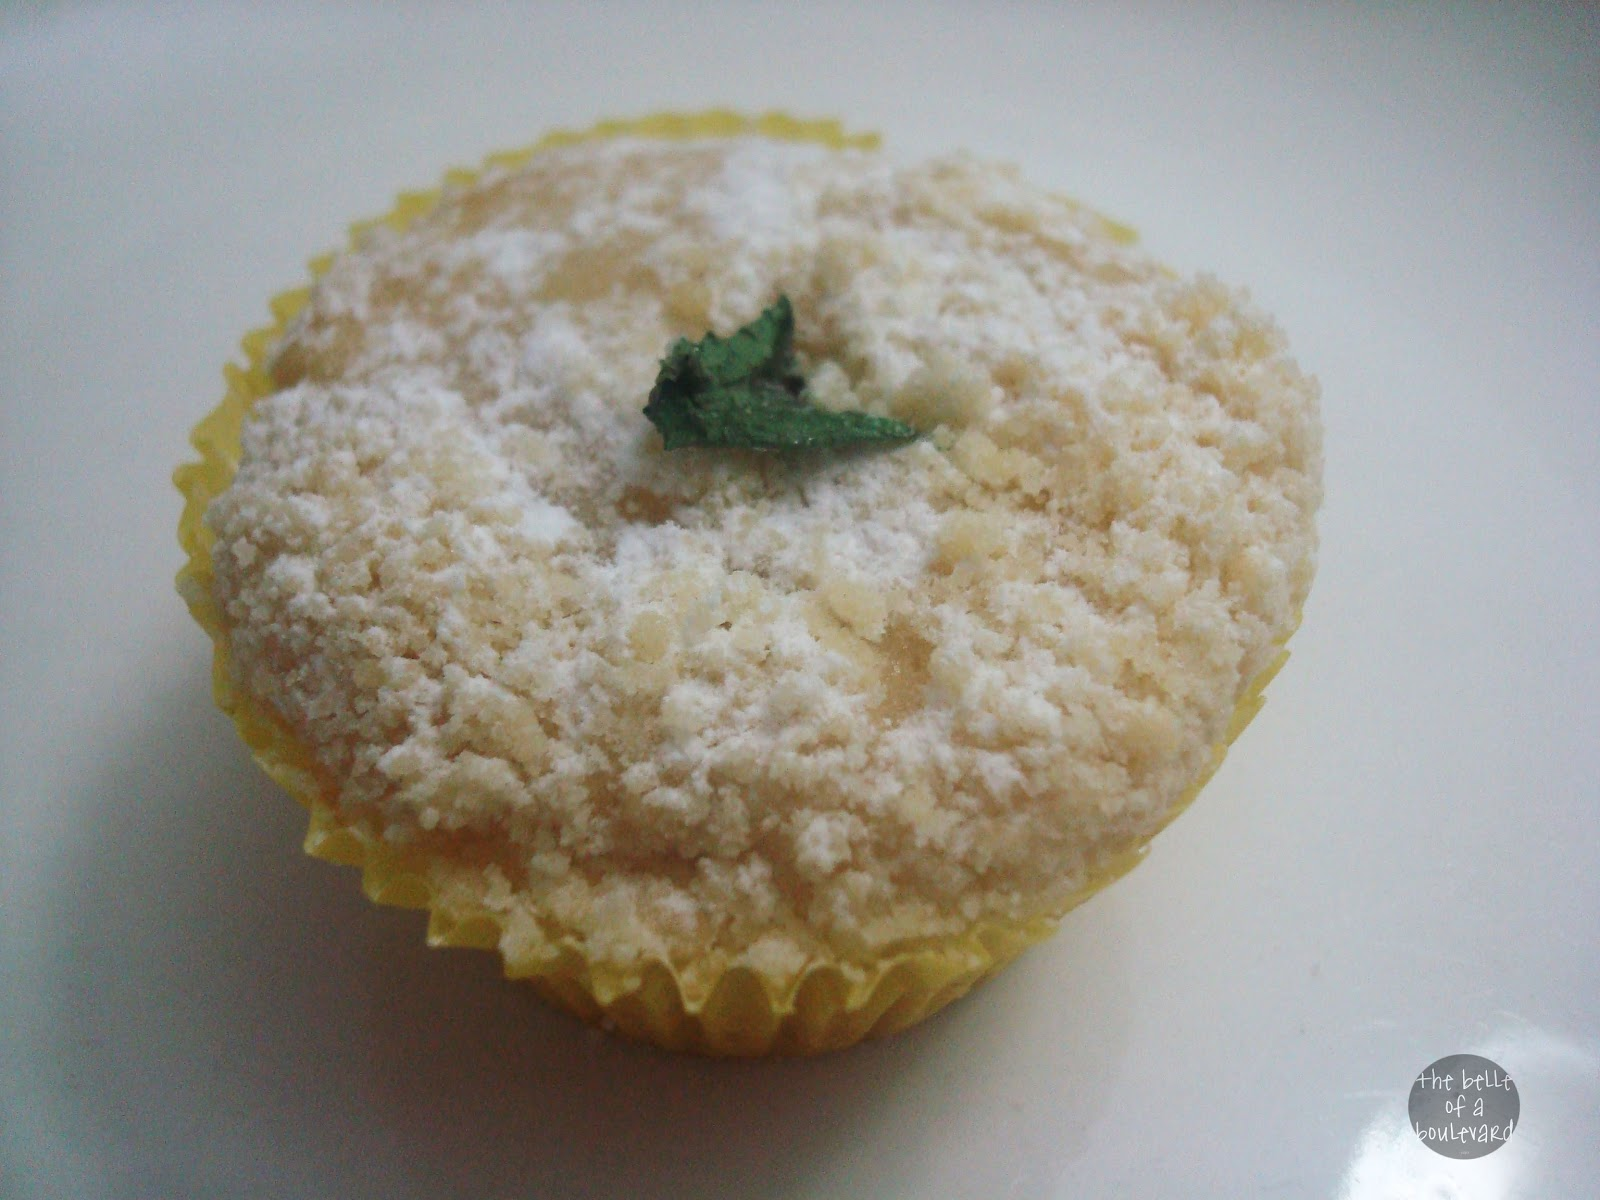 Ovn Bread Co. Kalamansi Muffin